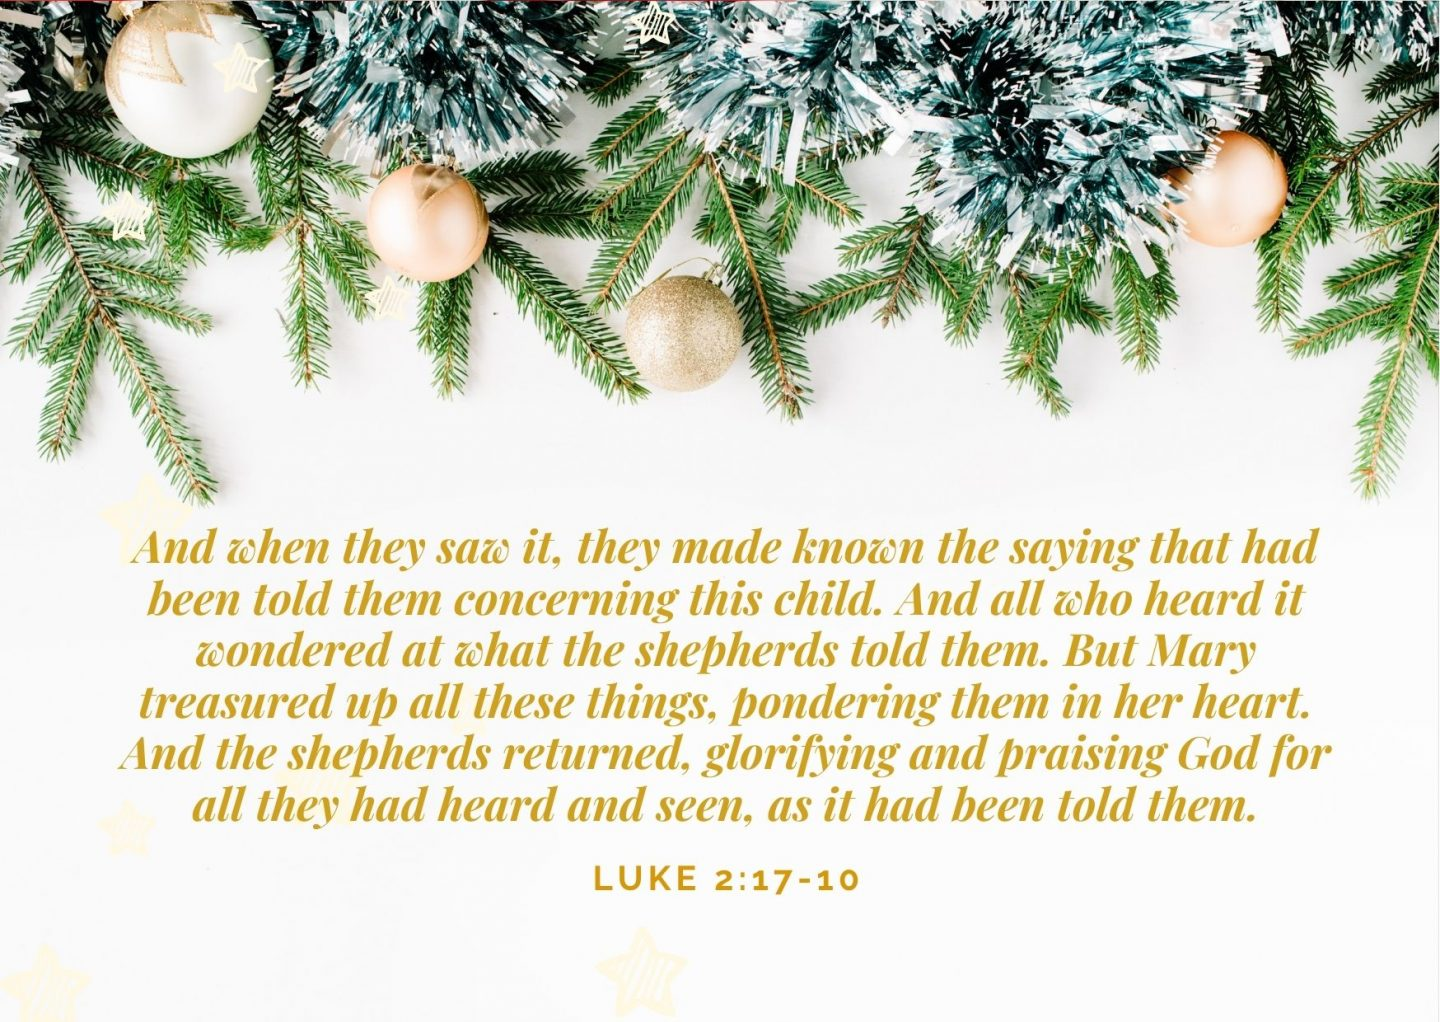 And when they saw it, they made known the saying that had been told them concerning this child. And all who heard it wondered at what the shepherds told them. But Mary treasured up all these things, pondering them in her heart. And the shepherds returned, glorifying and praising God for all they had heard and seen, as it had been told them. Luke 2:17-10